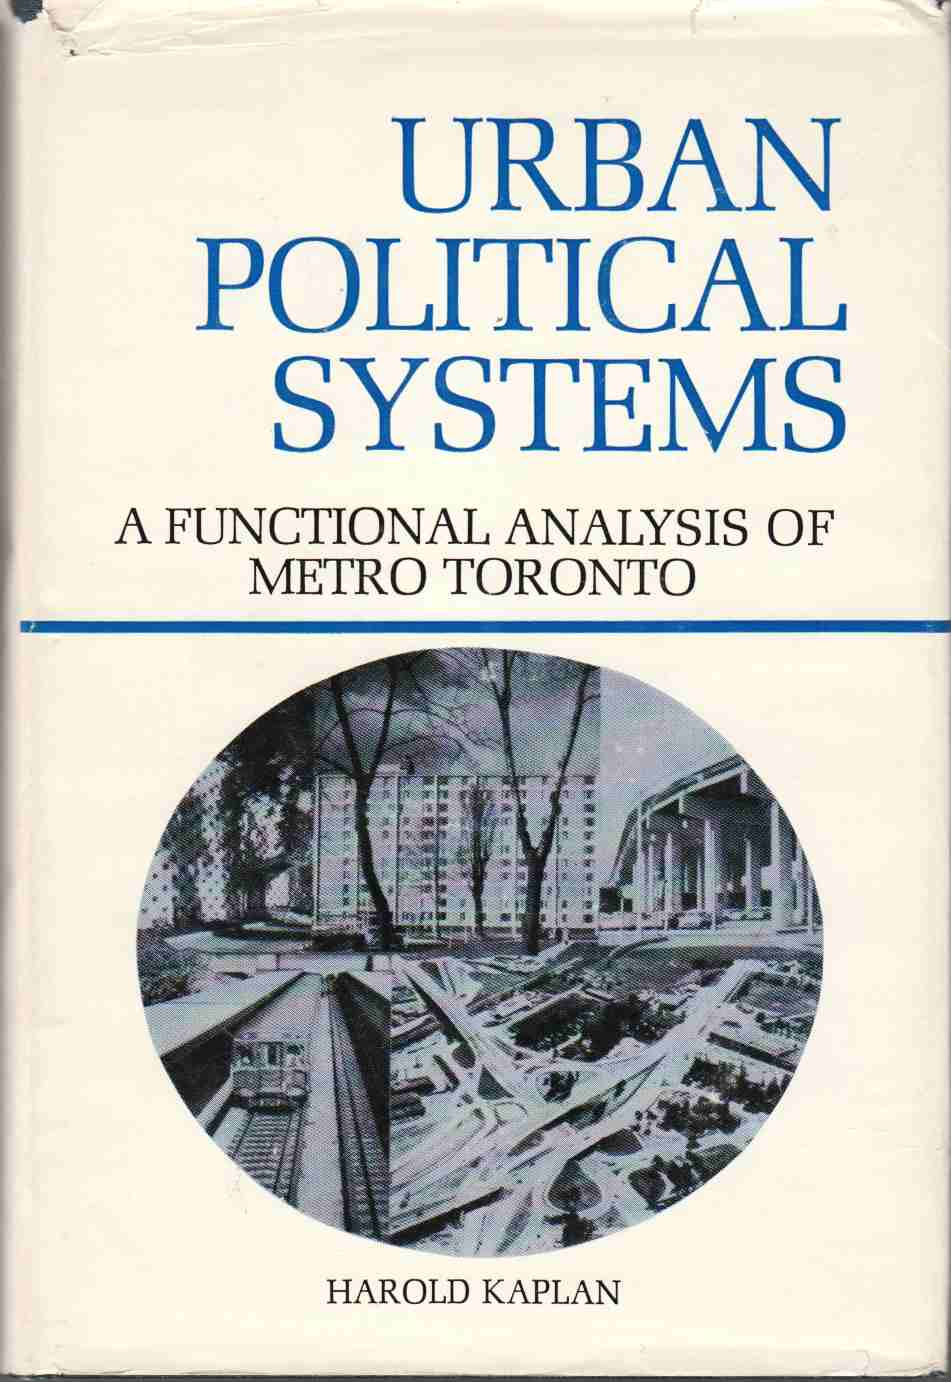 Image for Urban Political Systems A Functional Analysis of Metro Toronto